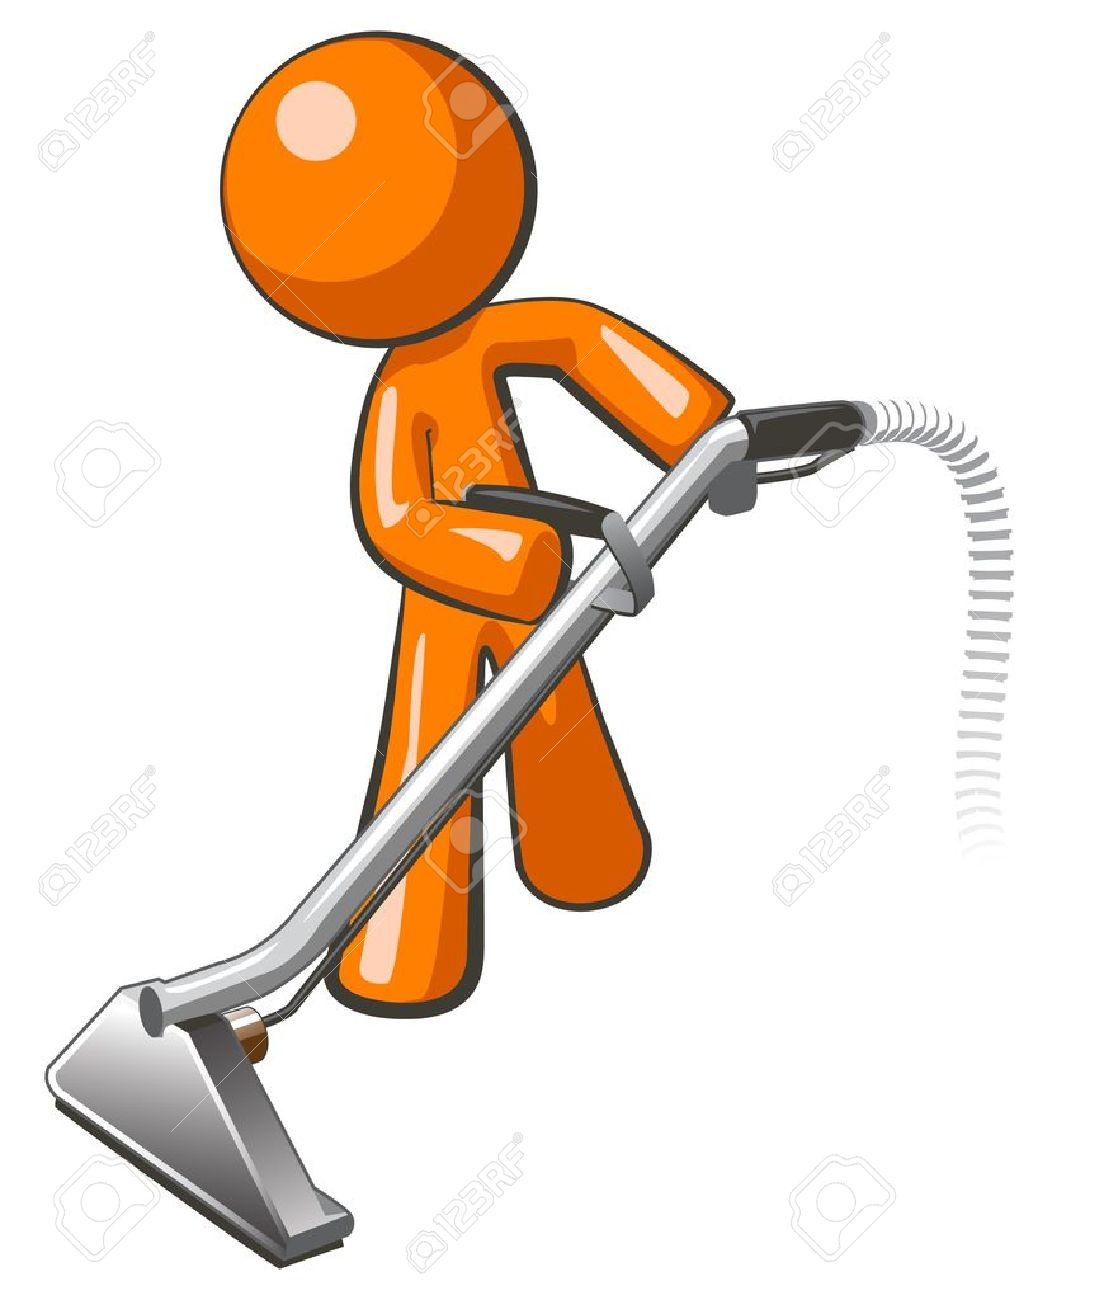 Vacuum cleaner clipart vacuum cleaner clip art - Carpet Clean Orange Man With